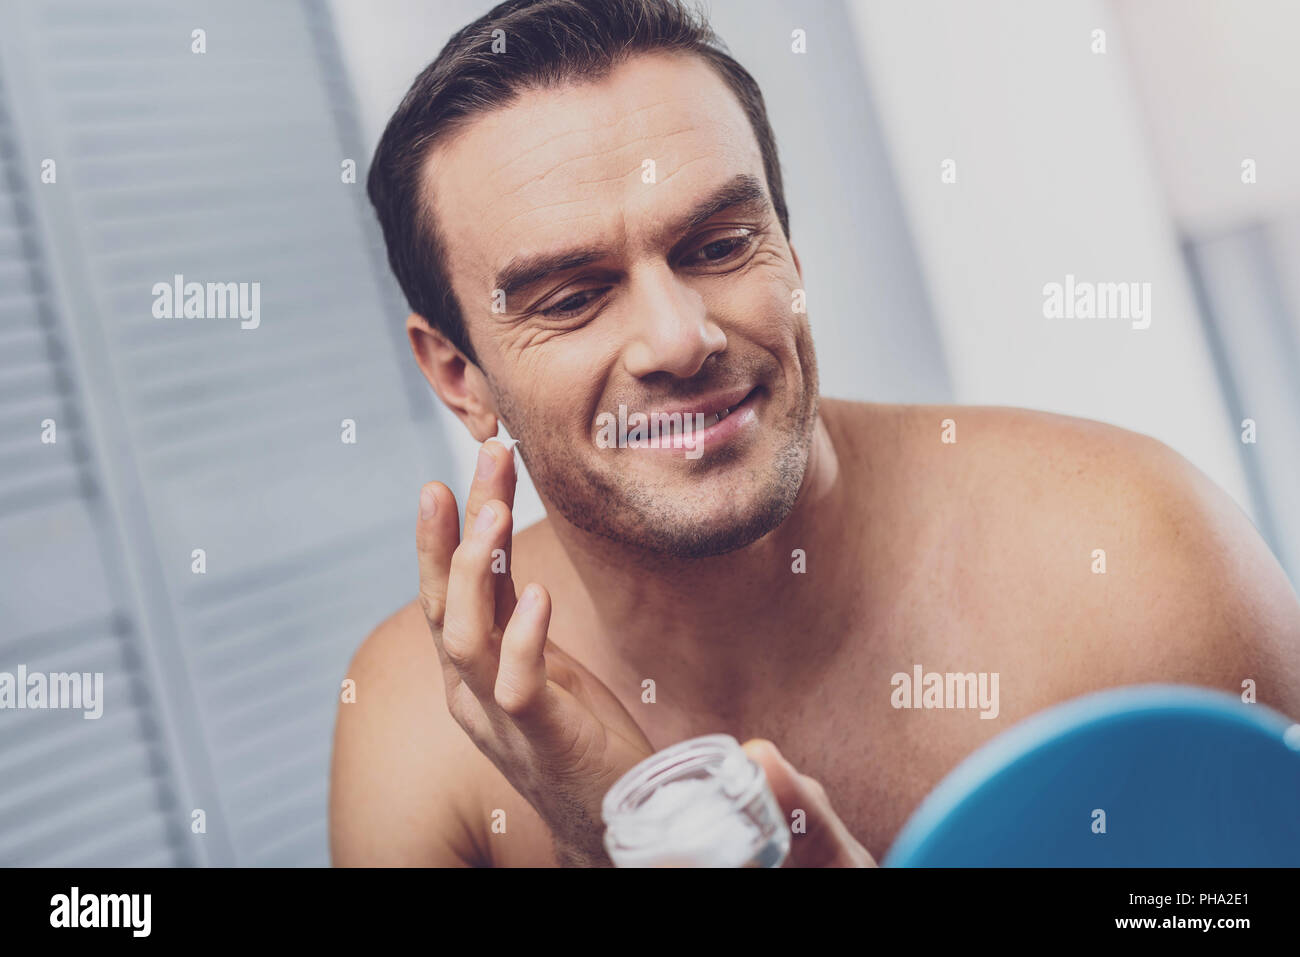 Man with bristle face using face cream - Stock Image